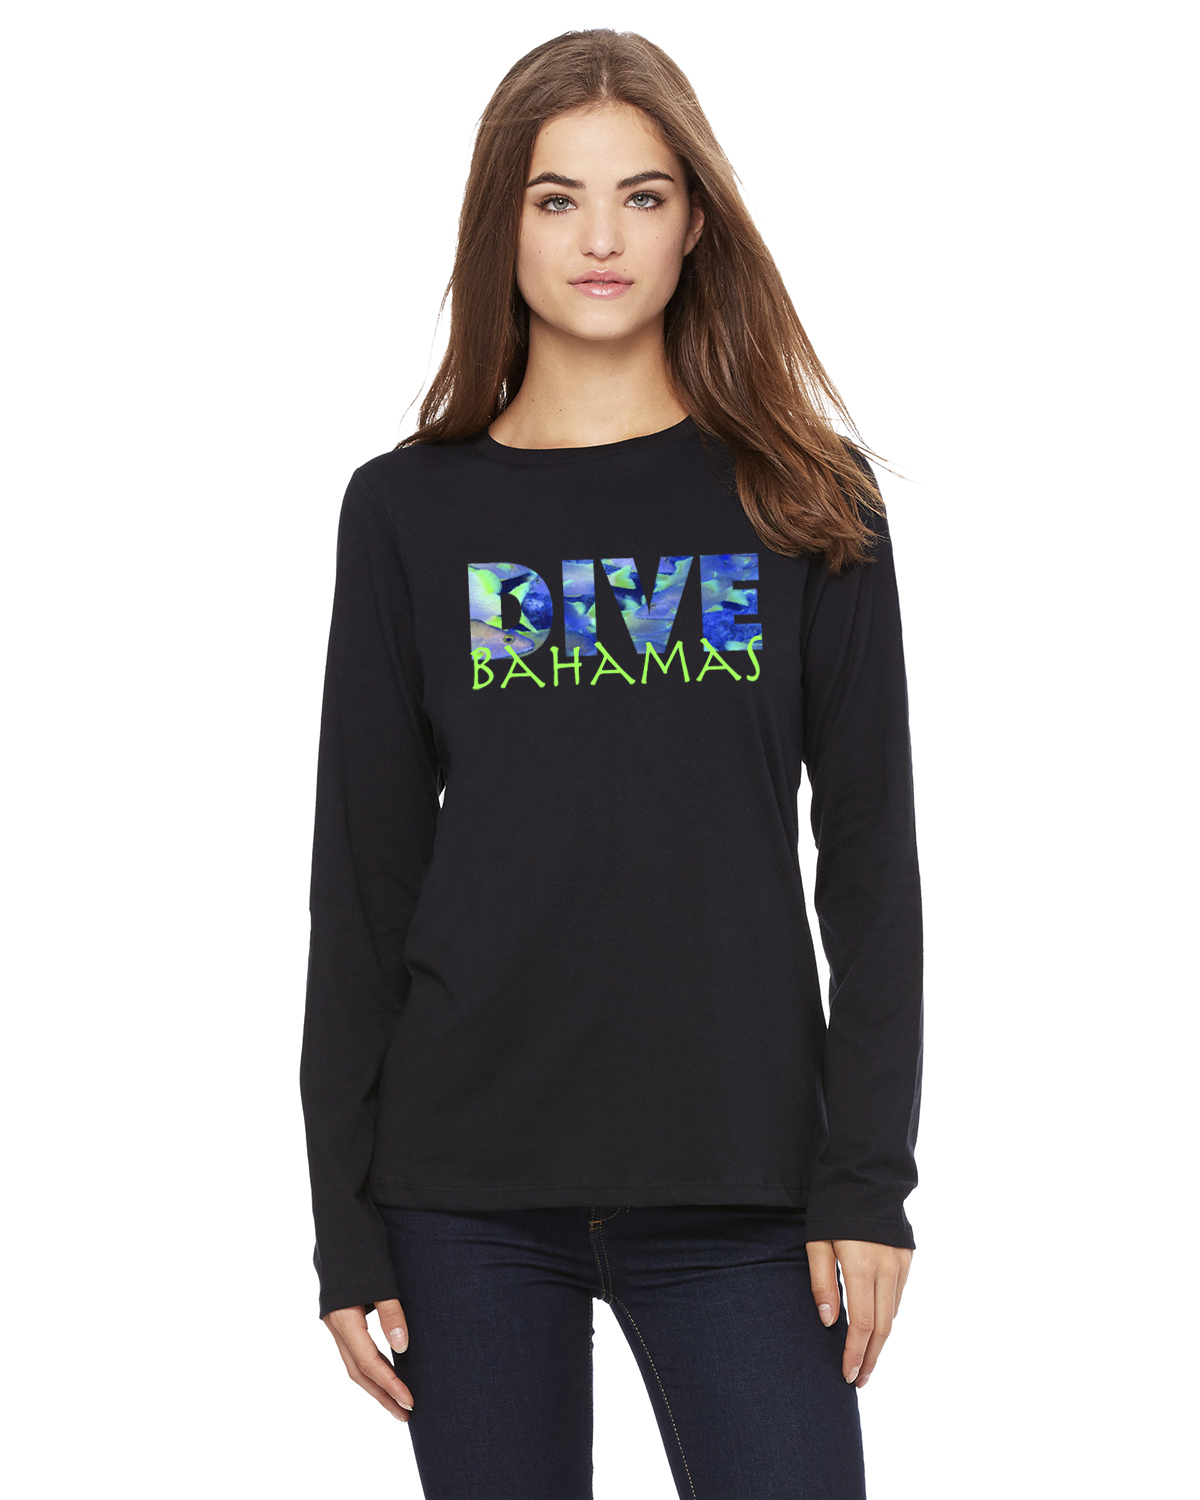 Women's Long Sleeve DIVE Bahamas T-Shirt (Black)